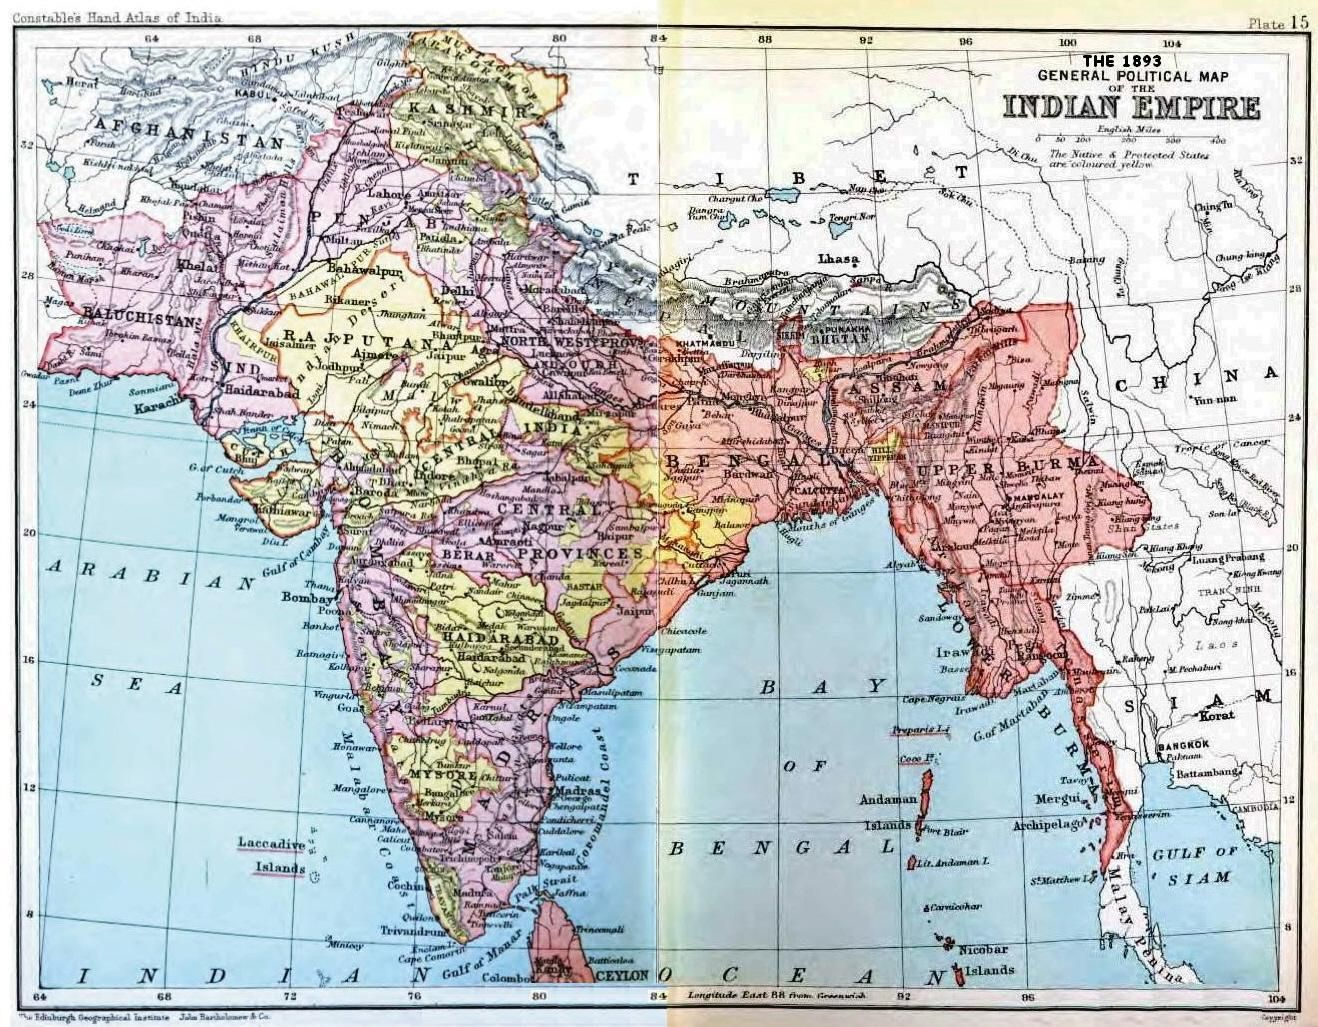 The 1893 General Political Map of the Indian Empire ... Governmet Map Of India Images on nepal india, cities in india, taj mahal india, rivers in india, dharamsala india, kolkata india, mundra india, food in india, mysore india, map southeast asia, kerala india, west bengal india, physical map india, vizag india, goa india, jaisalmer india, shimla india, delhi india, chennai india, ganges river india,